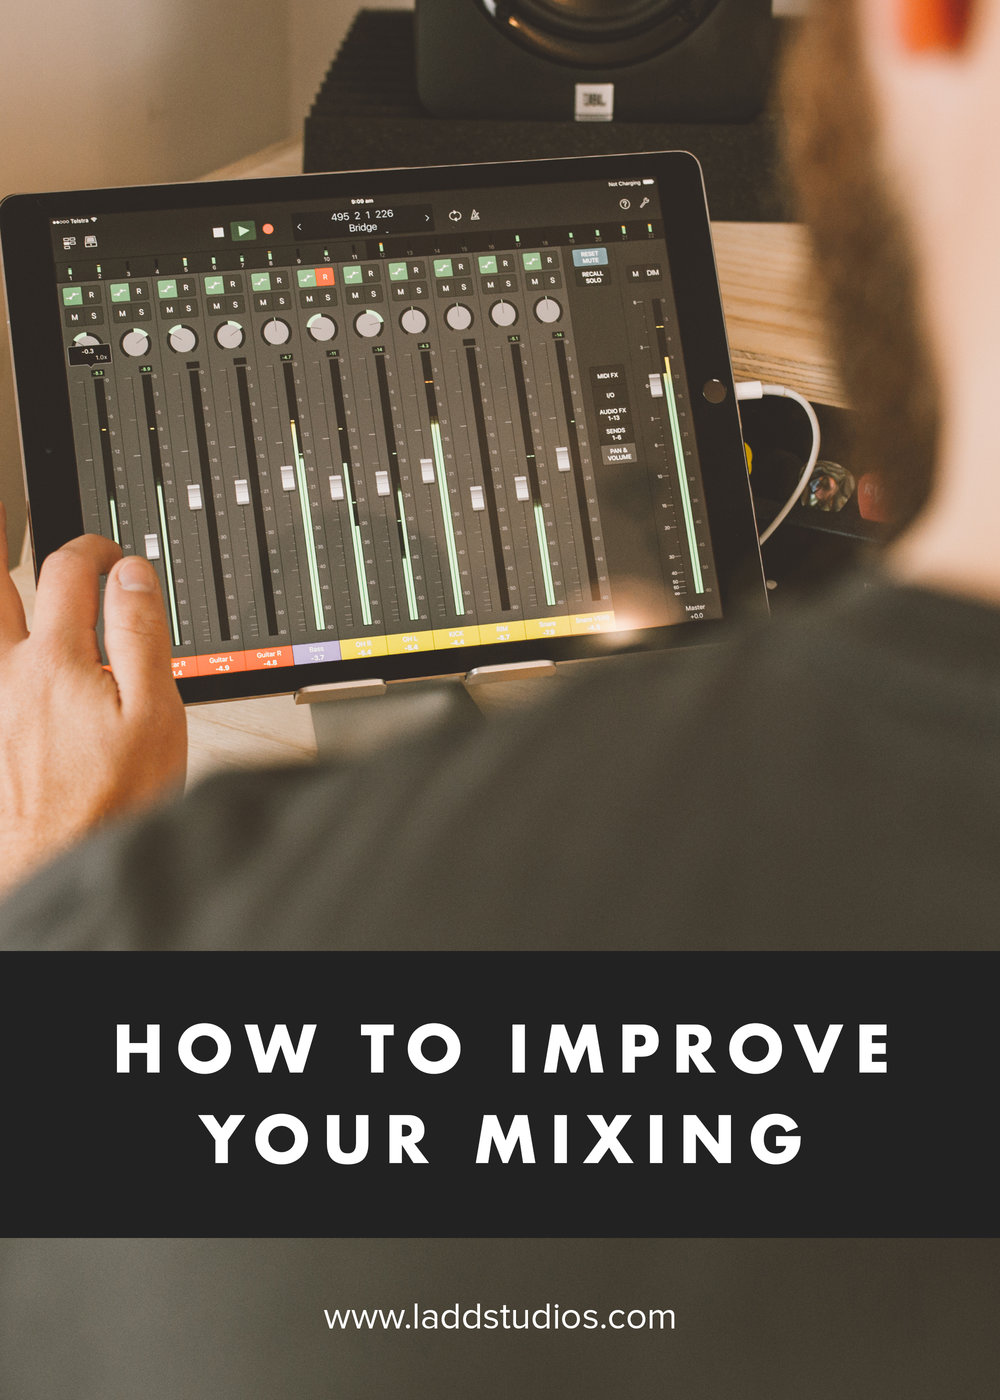 how-to-improve-your-mixing-ladd-studios.jpg